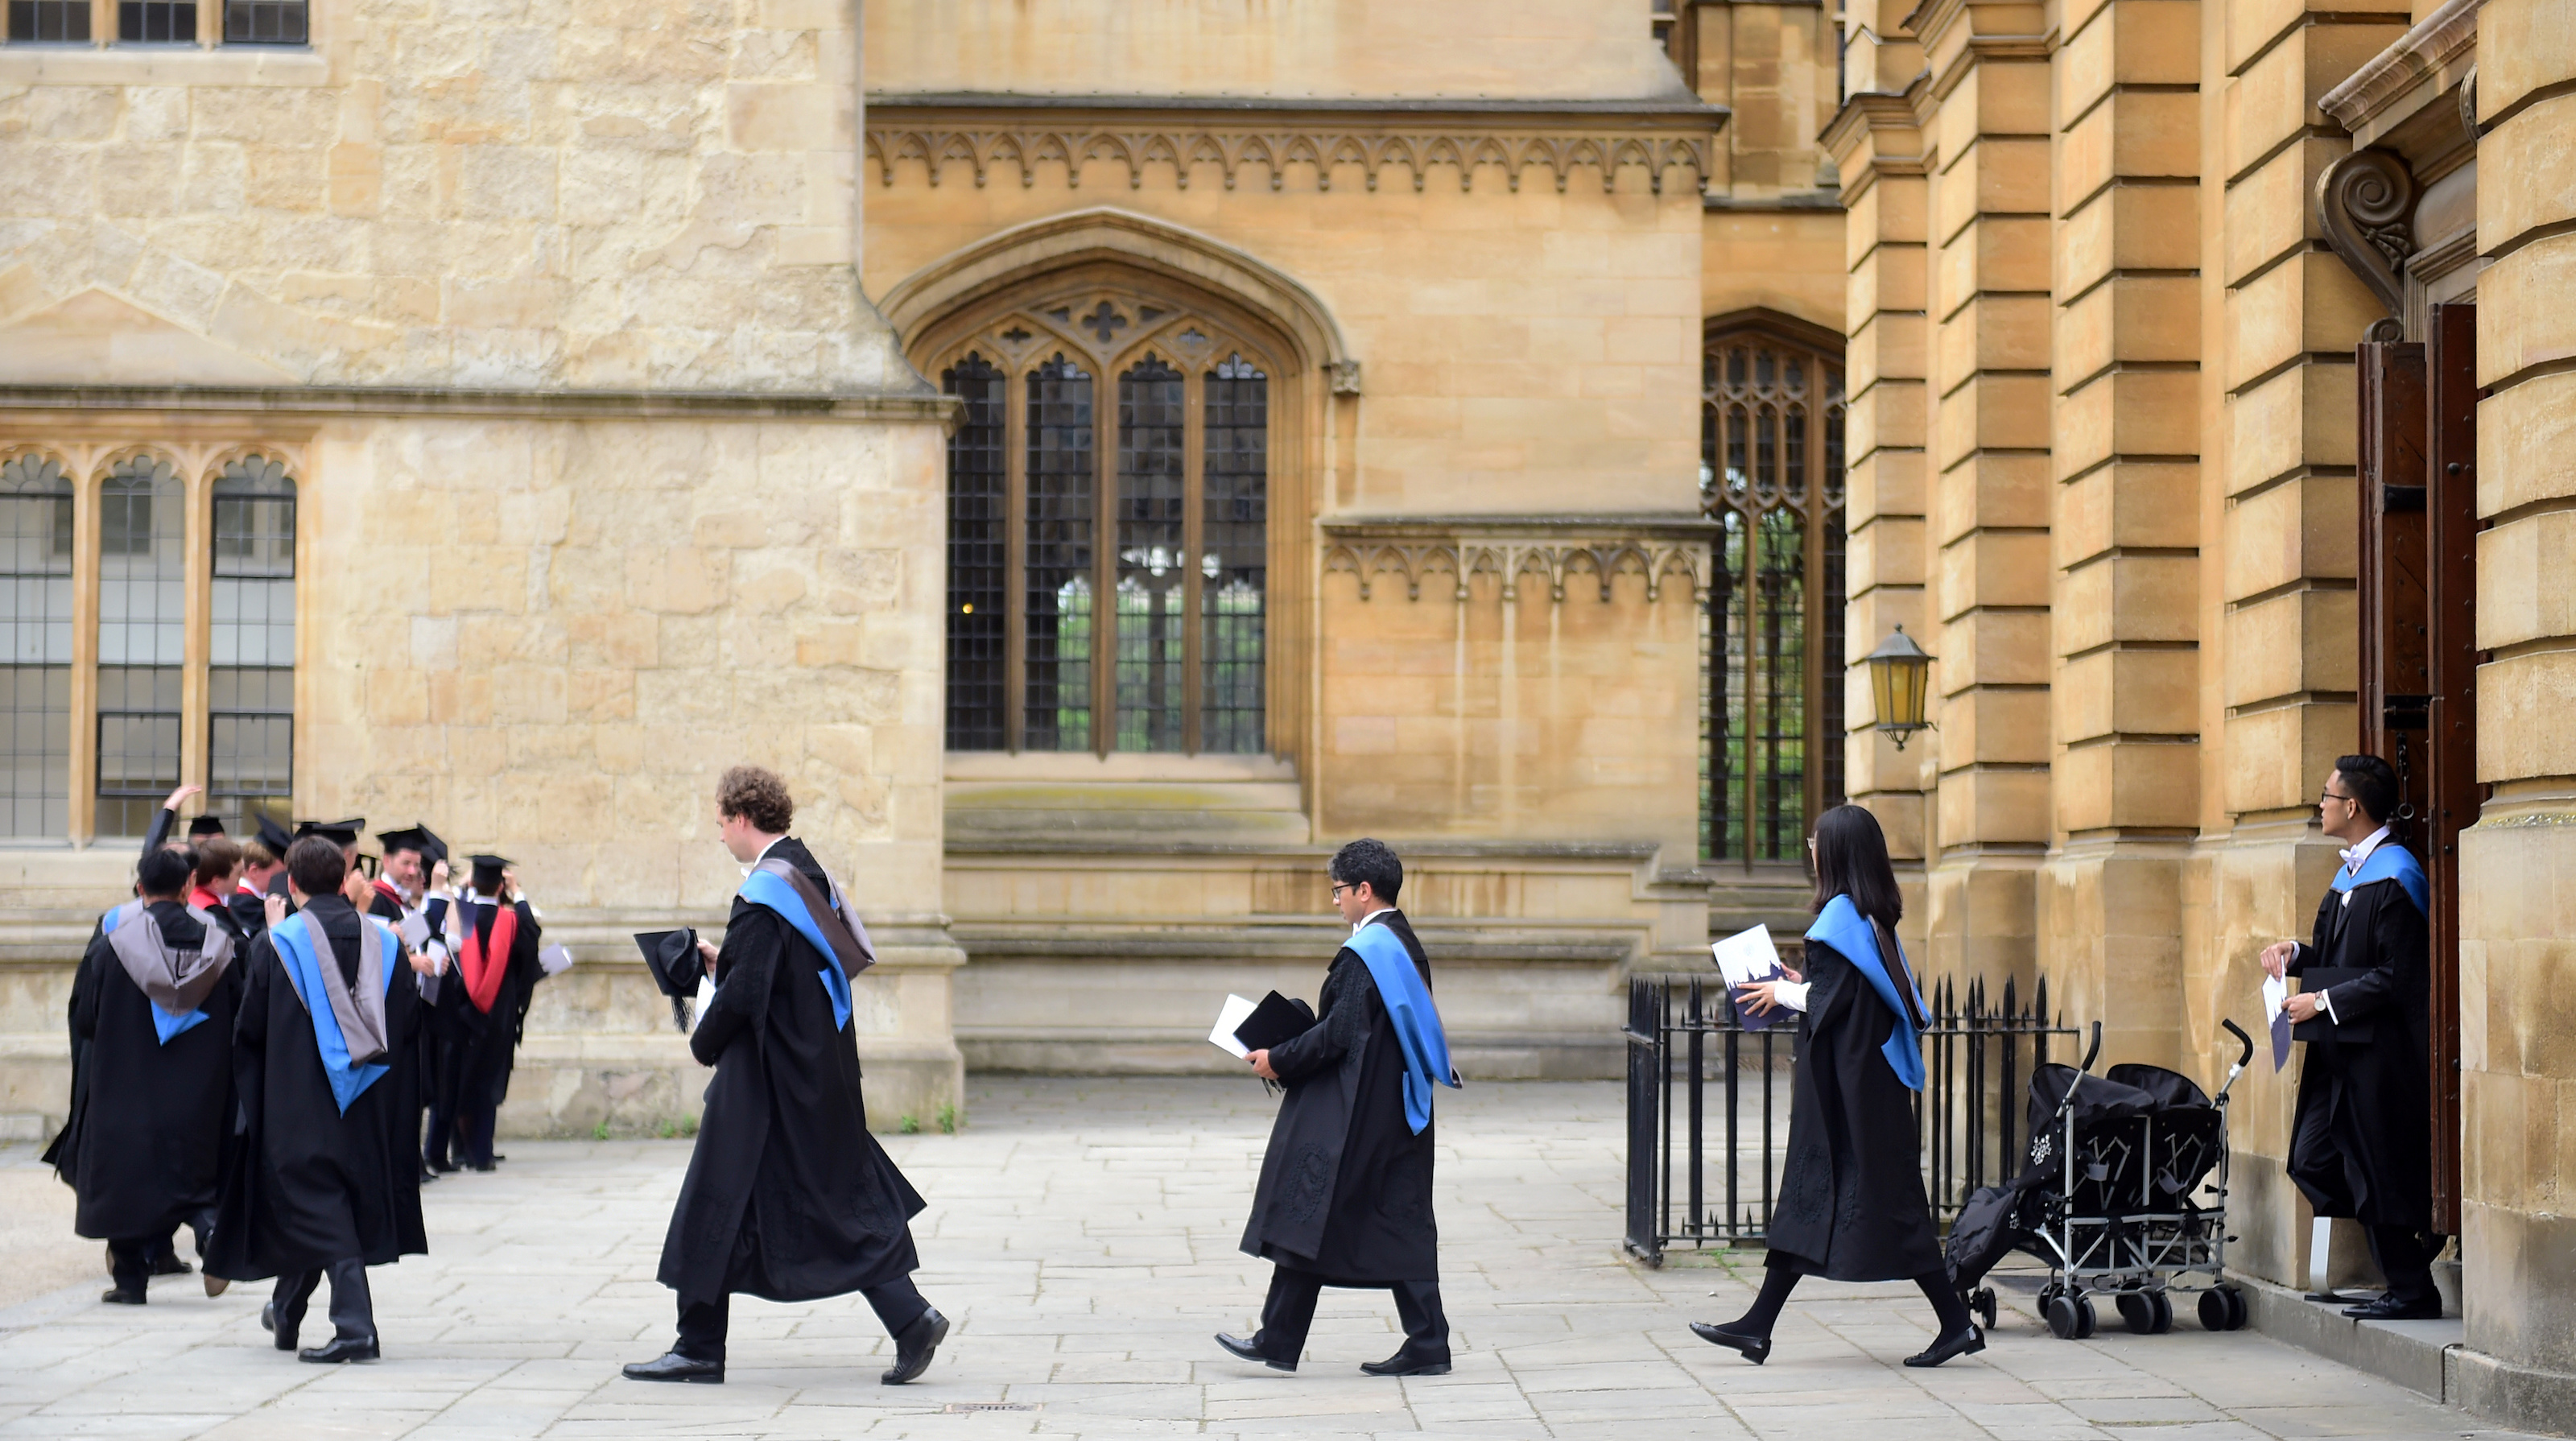 Graduates leave the Sheldonian Theatre after a graduation ceremony at Oxford University, in Oxford, Britain July 15, 2017. REUTERS/Hannah McKay - RC12AE521EB0